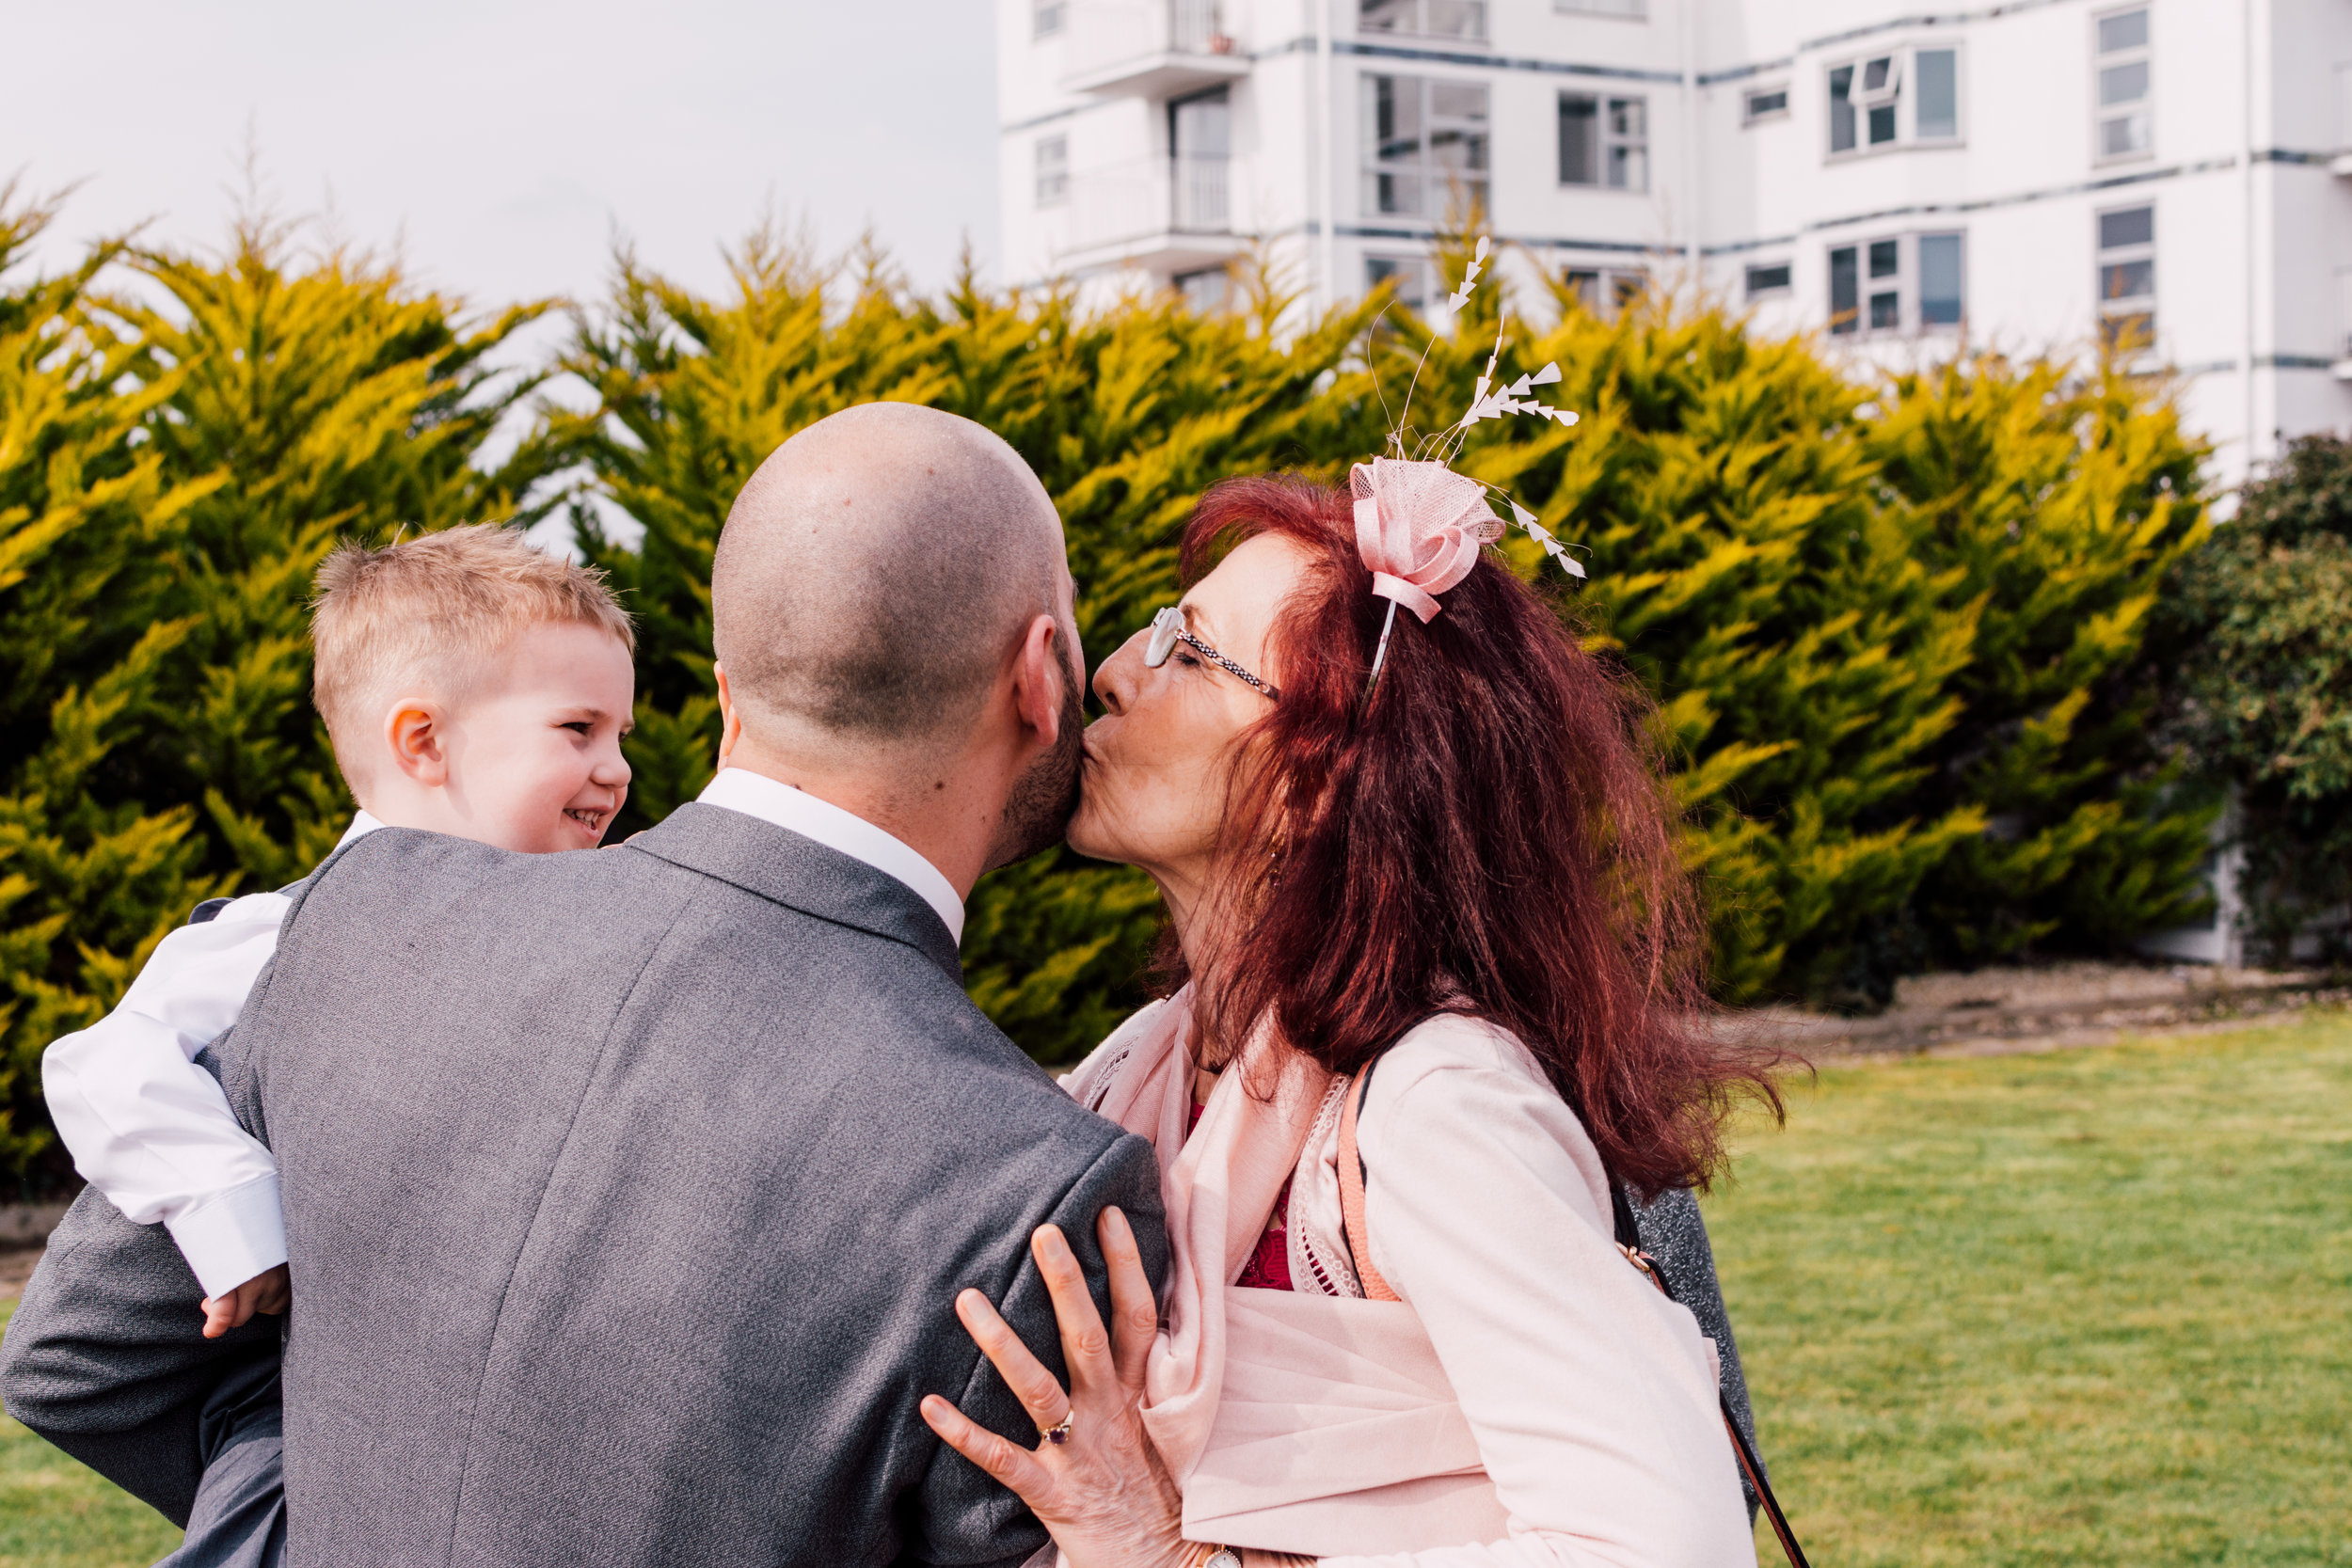 RGWPHOTOS_LEWIS+LUCY_6467.jpg